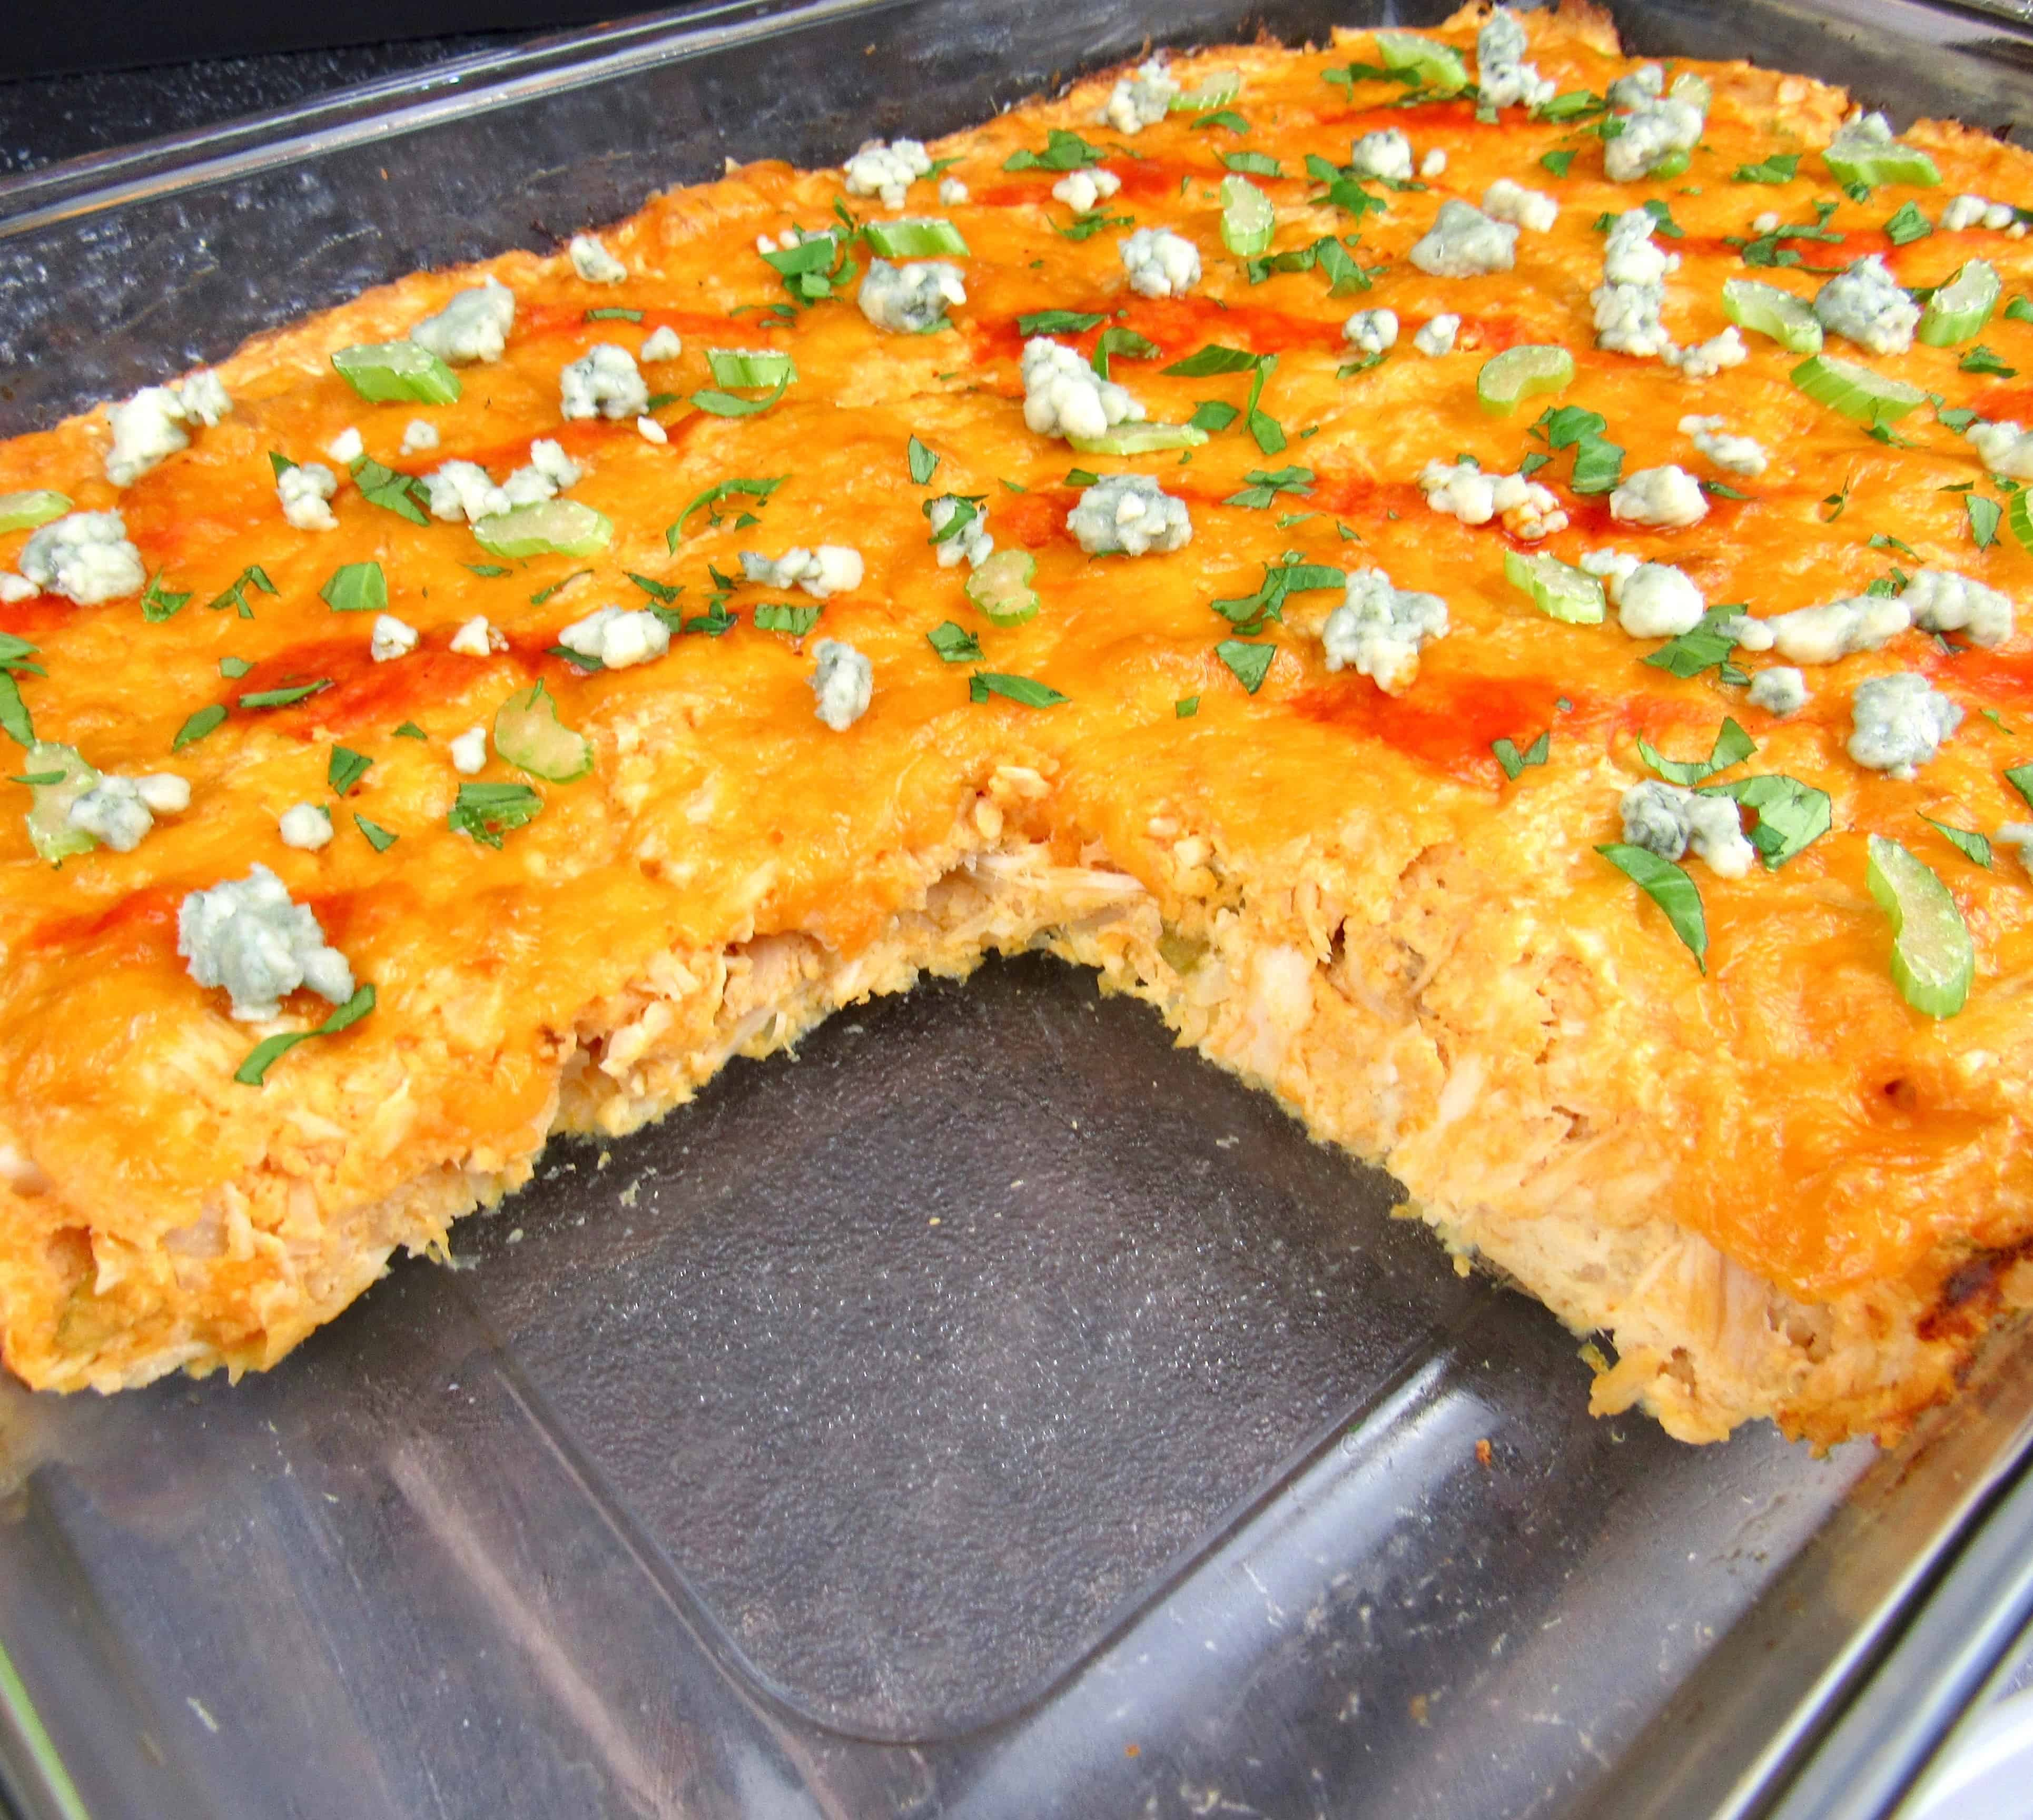 buffalo chicken casserole in glass baking dish with slice missing